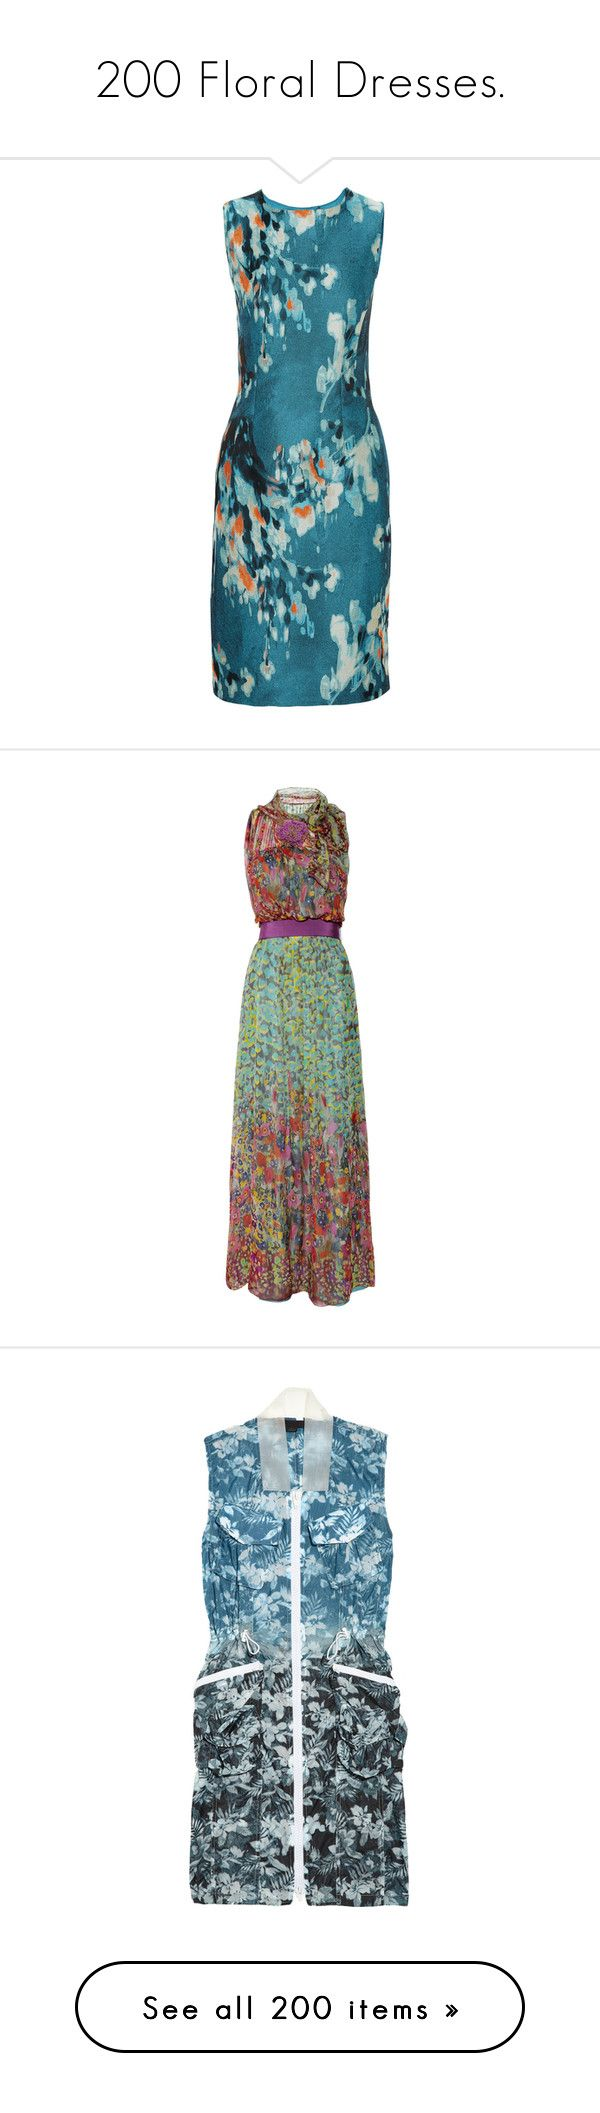 """""""200 Floral Dresses."""" by that-drumming-noise ❤ liked on Polyvore featuring dresses, azure, button dress, multi color dress, pencil dresses, petite floral dress, petite pencil dress, gowns, vestidos and maxi dresses"""